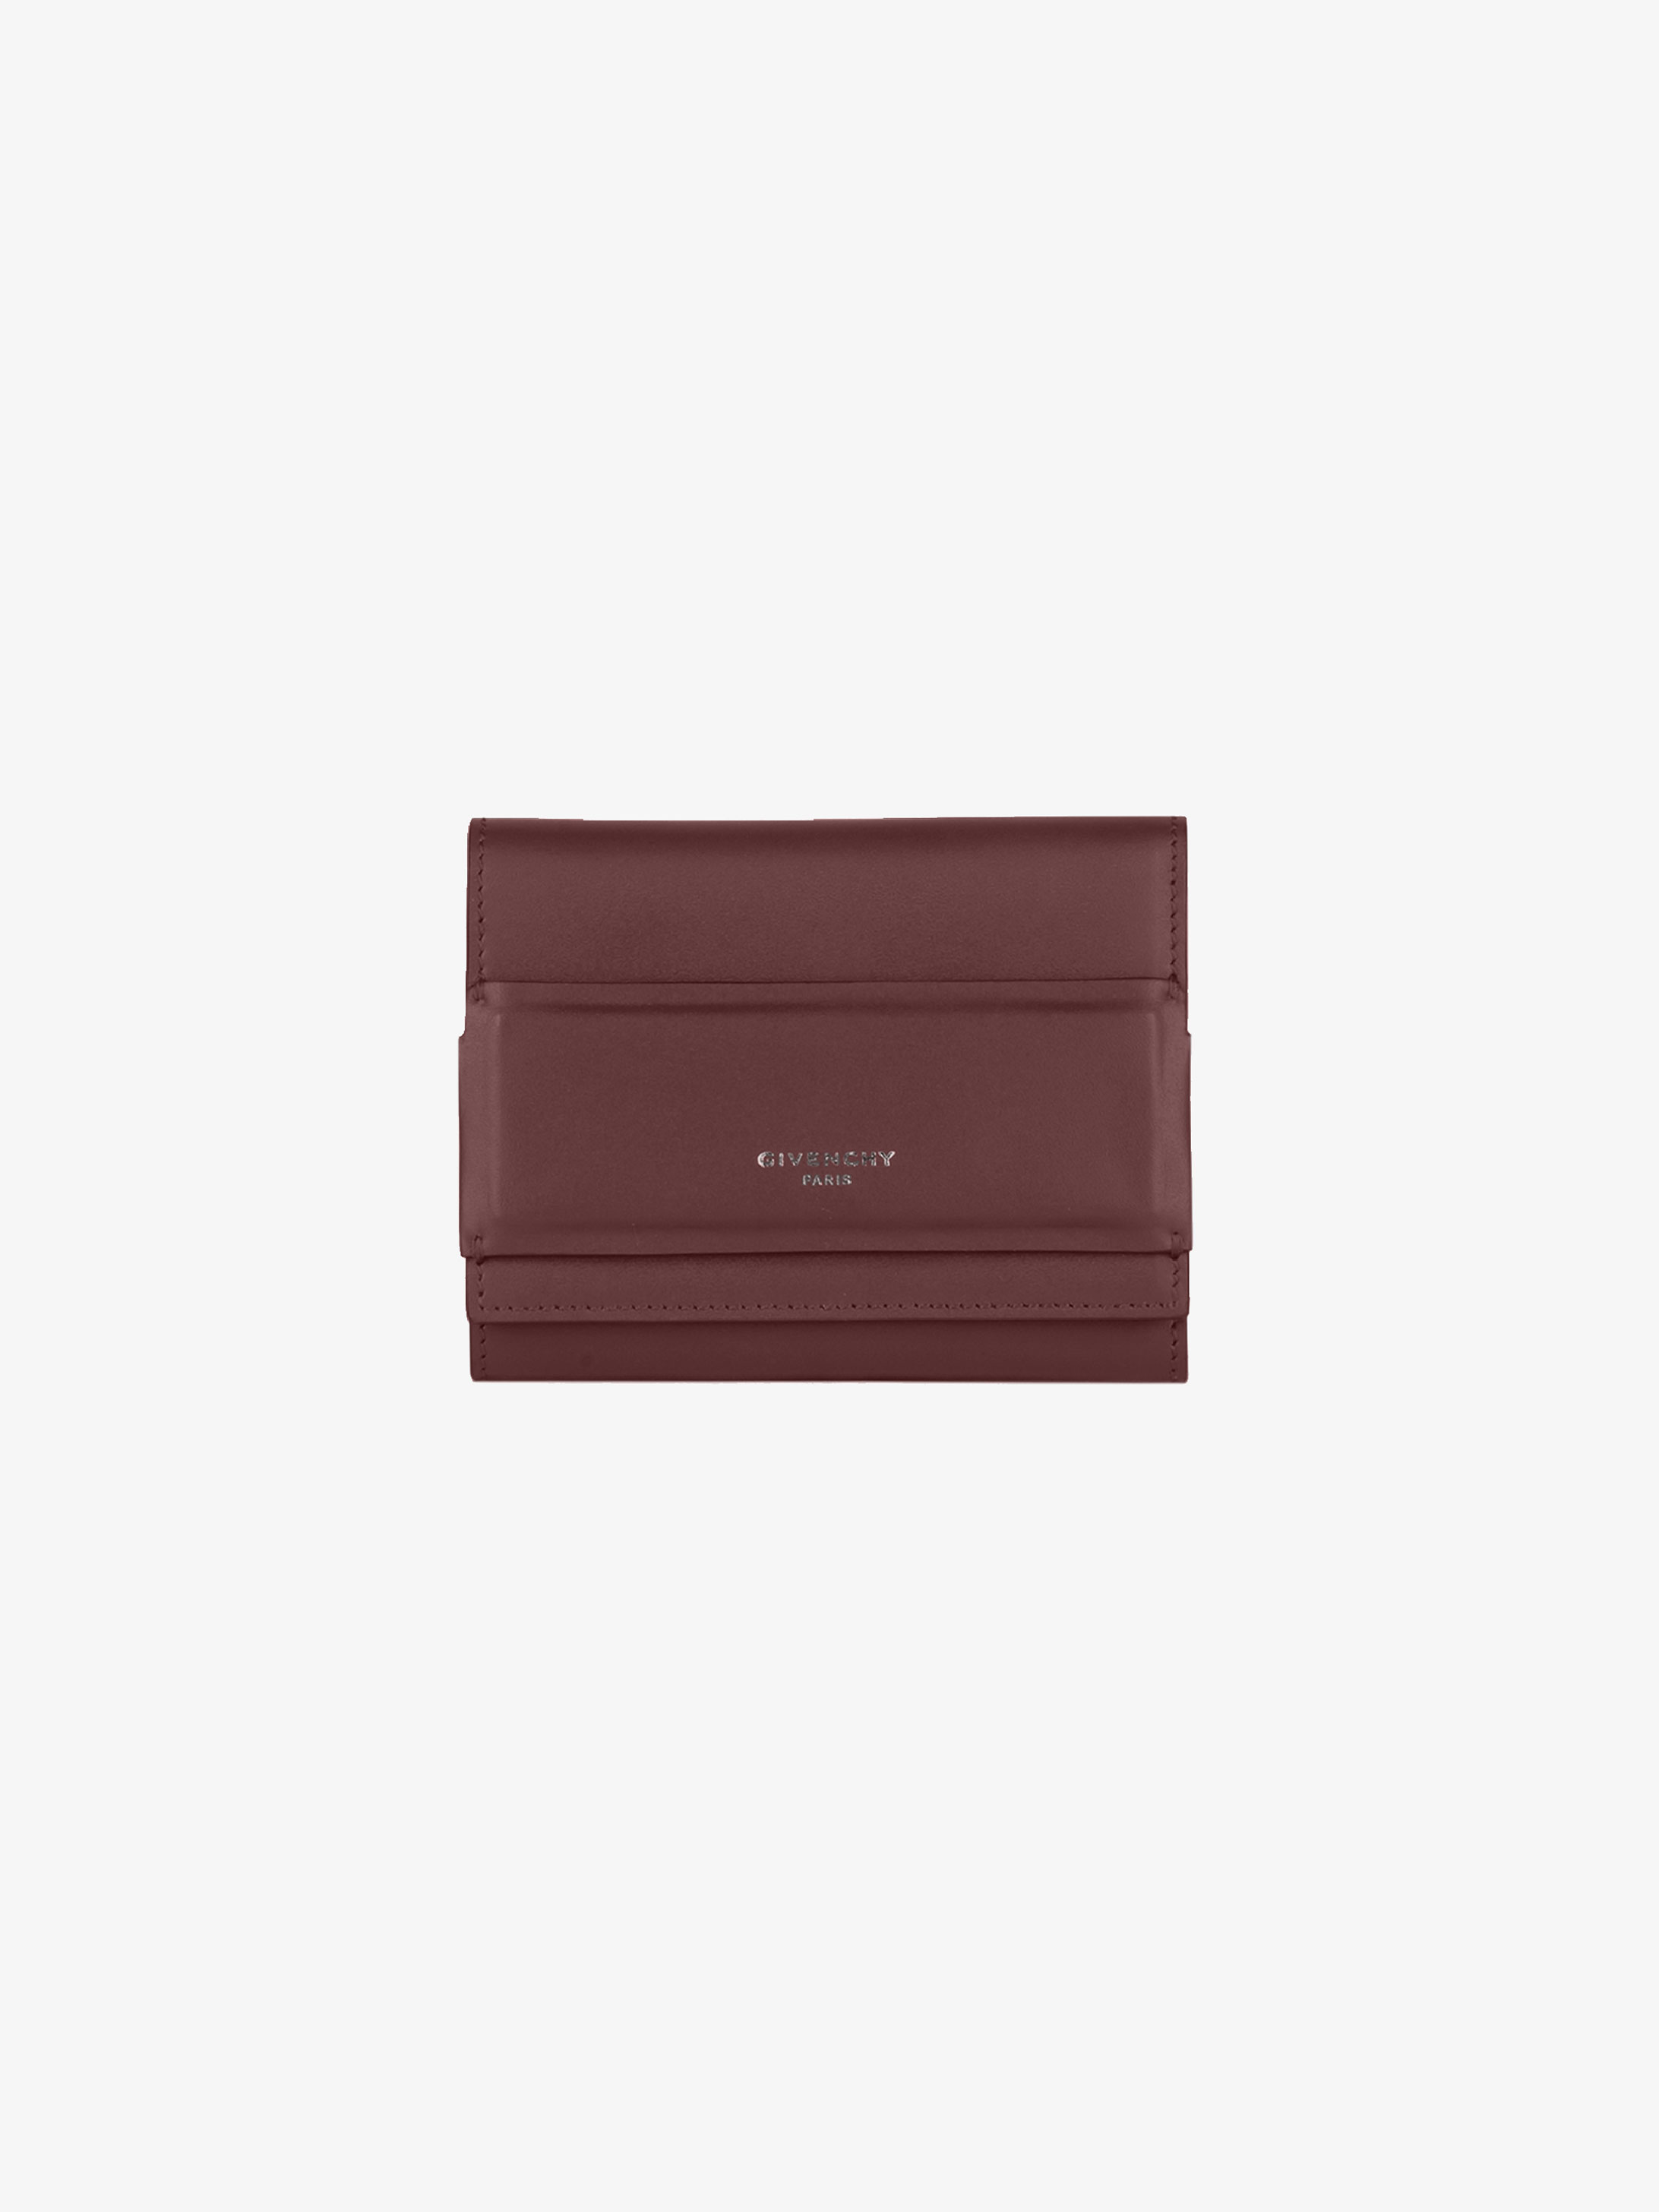 Horizon trifold wallet in smooth leather